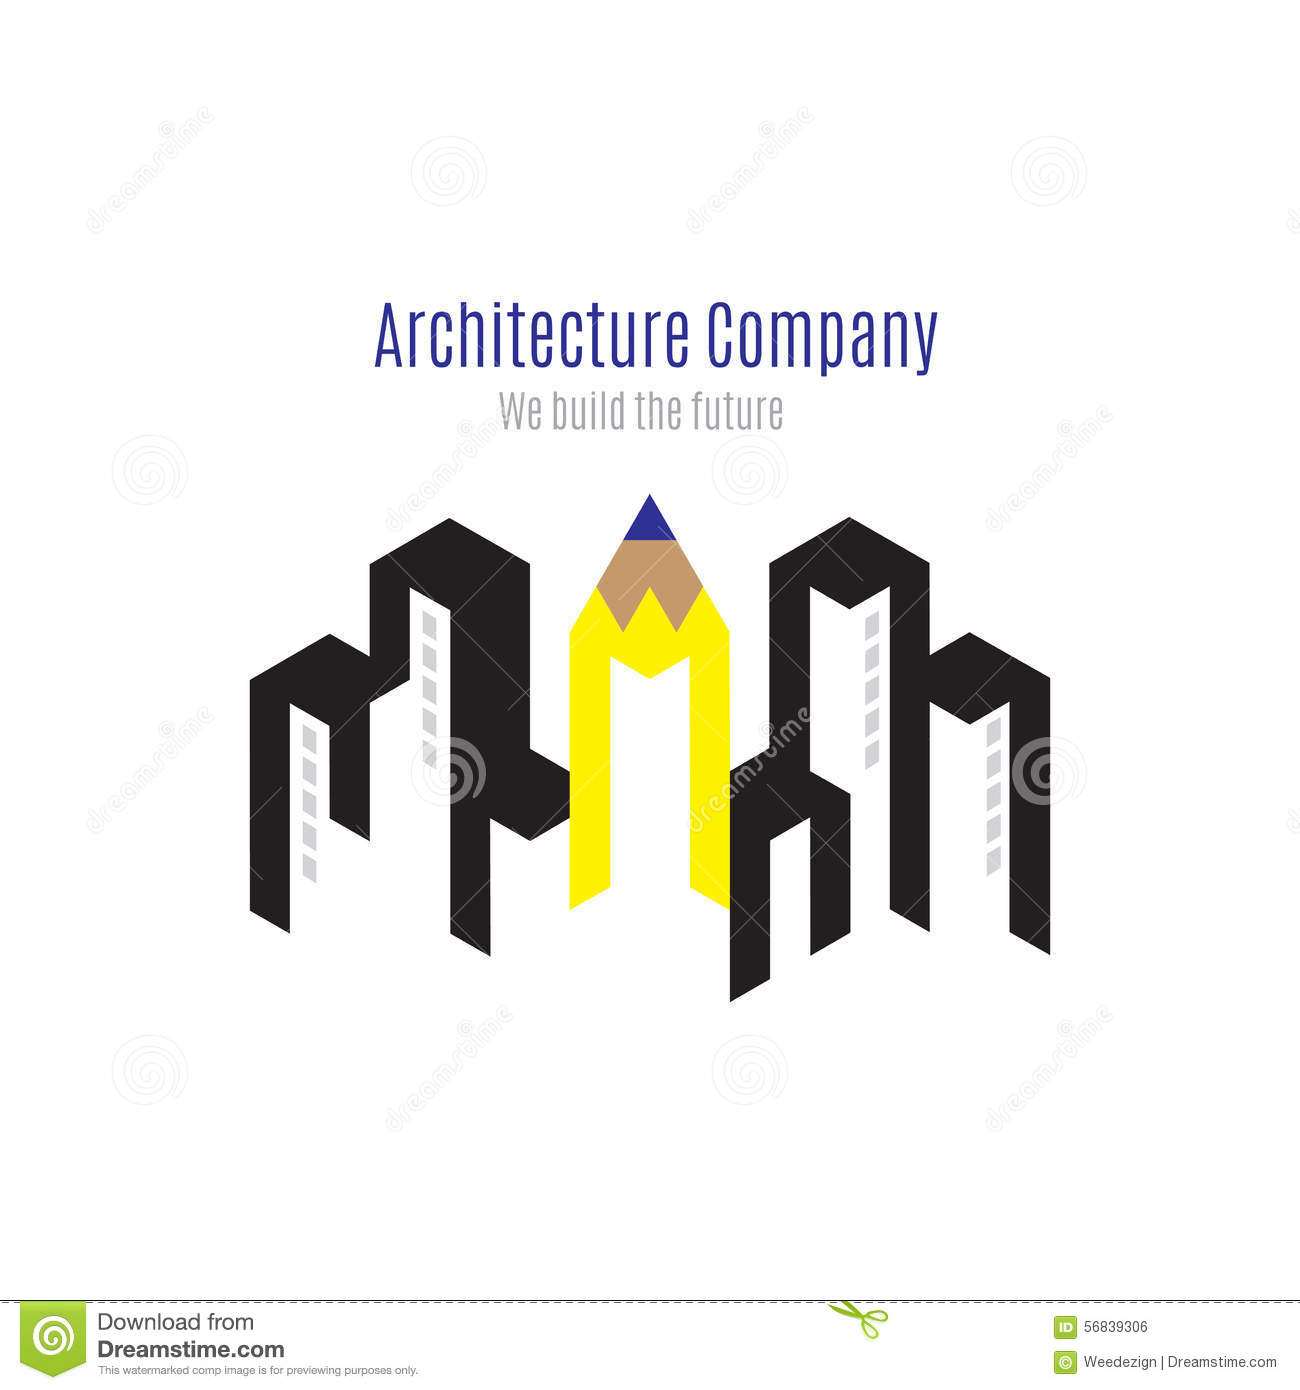 Attractive Vector : Architecture Company Logo With Building And Yellow Penc Stock  Vector   Illustration Of Abstract, Pencil: 56839306